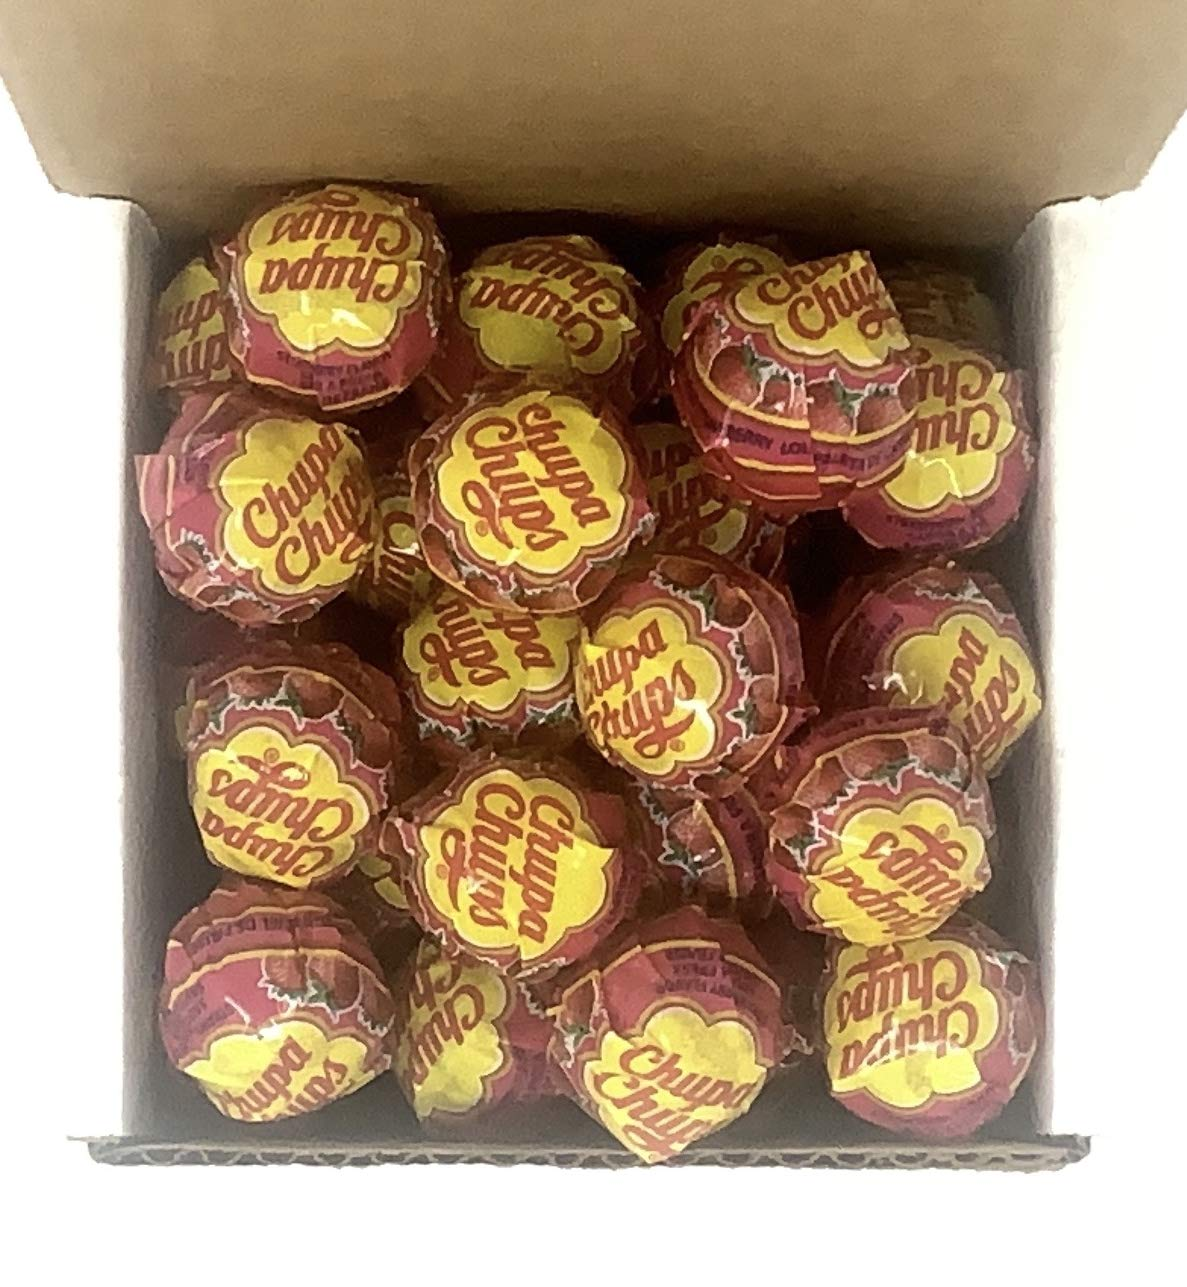 Chupa Chups Lollipops 40 trust National products Lollies Box in Strawberry a